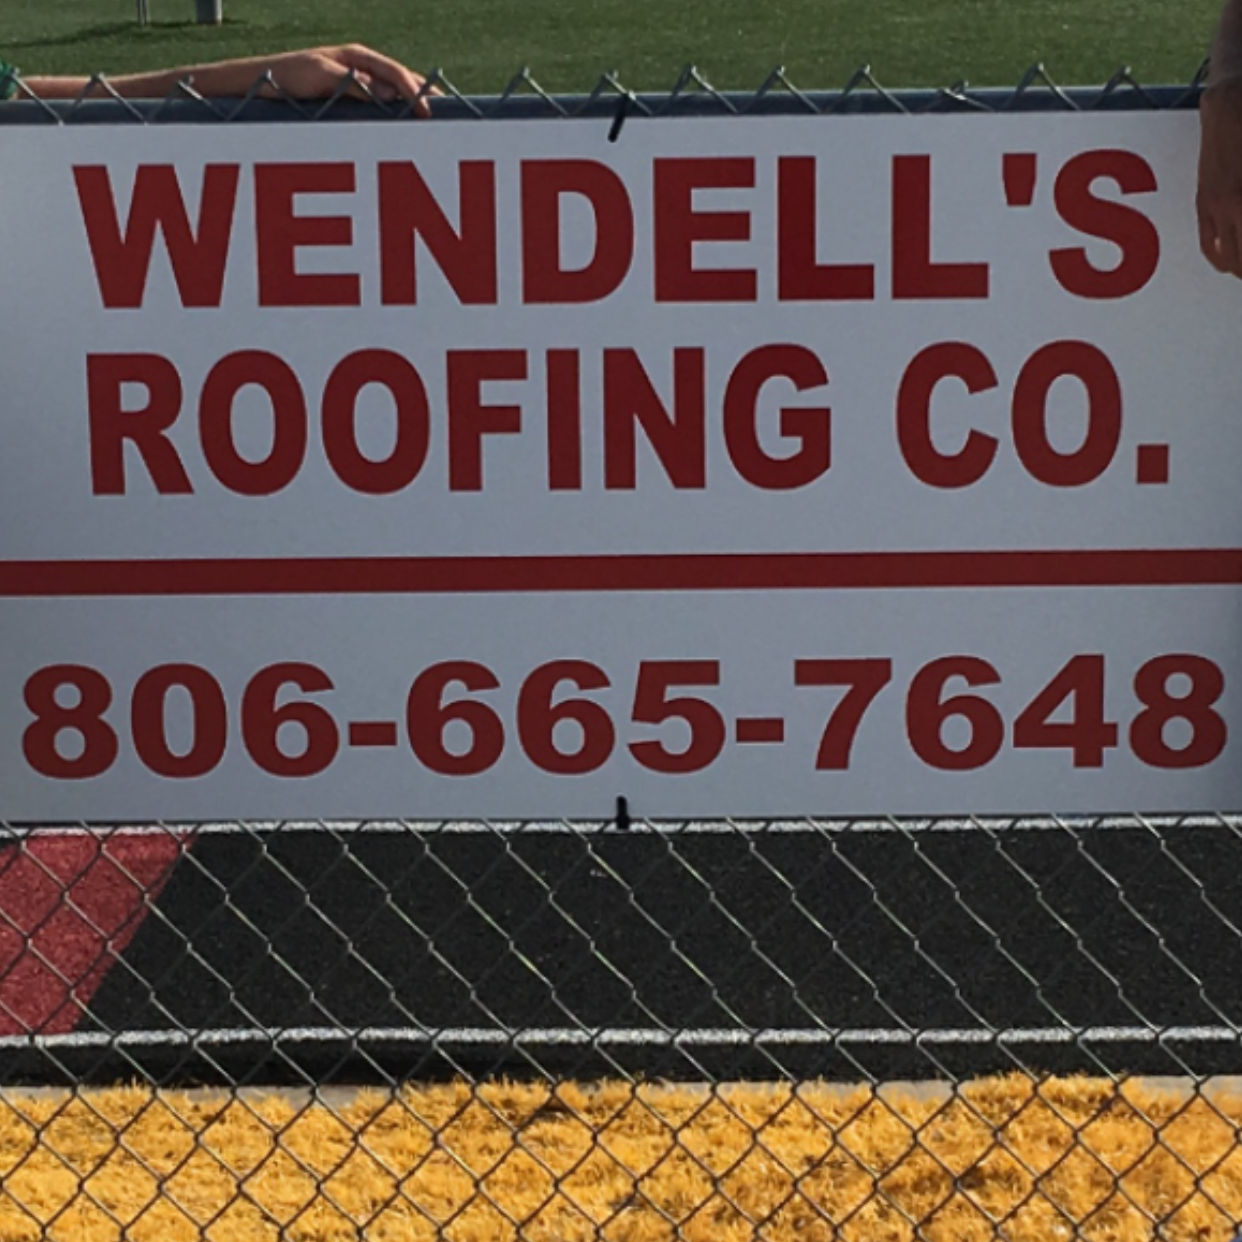 Wendell's Roofing Company Logo